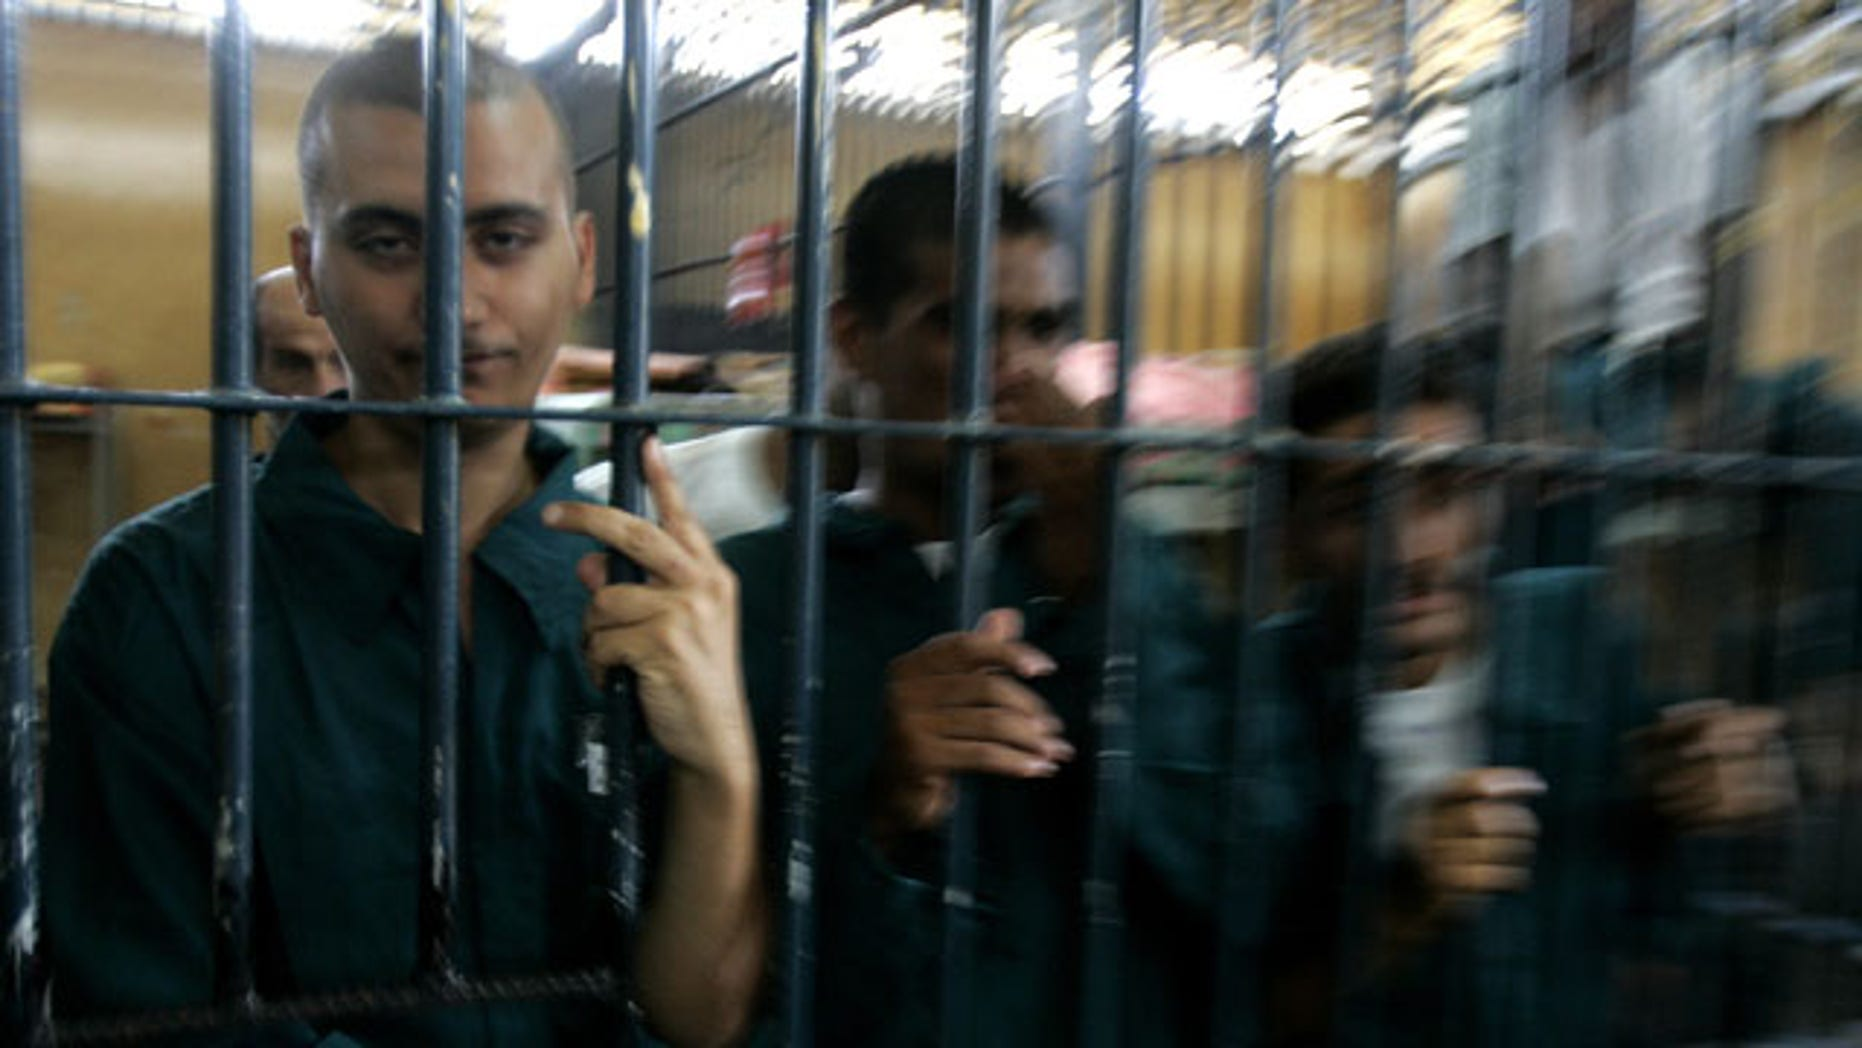 Aug. 28, 2007: Prisoners look out of their cell in the Rusafa 5 intake prison inside the new judicial Green Zone in Baghdad, Iraq. Military documents in the biggest leak of secret information in U.S. history suggest that U.S. forces often failed to follow up on credible evidence that Iraqi forces mistreated, tortured and killed their captives as they battled a violent insurgency.